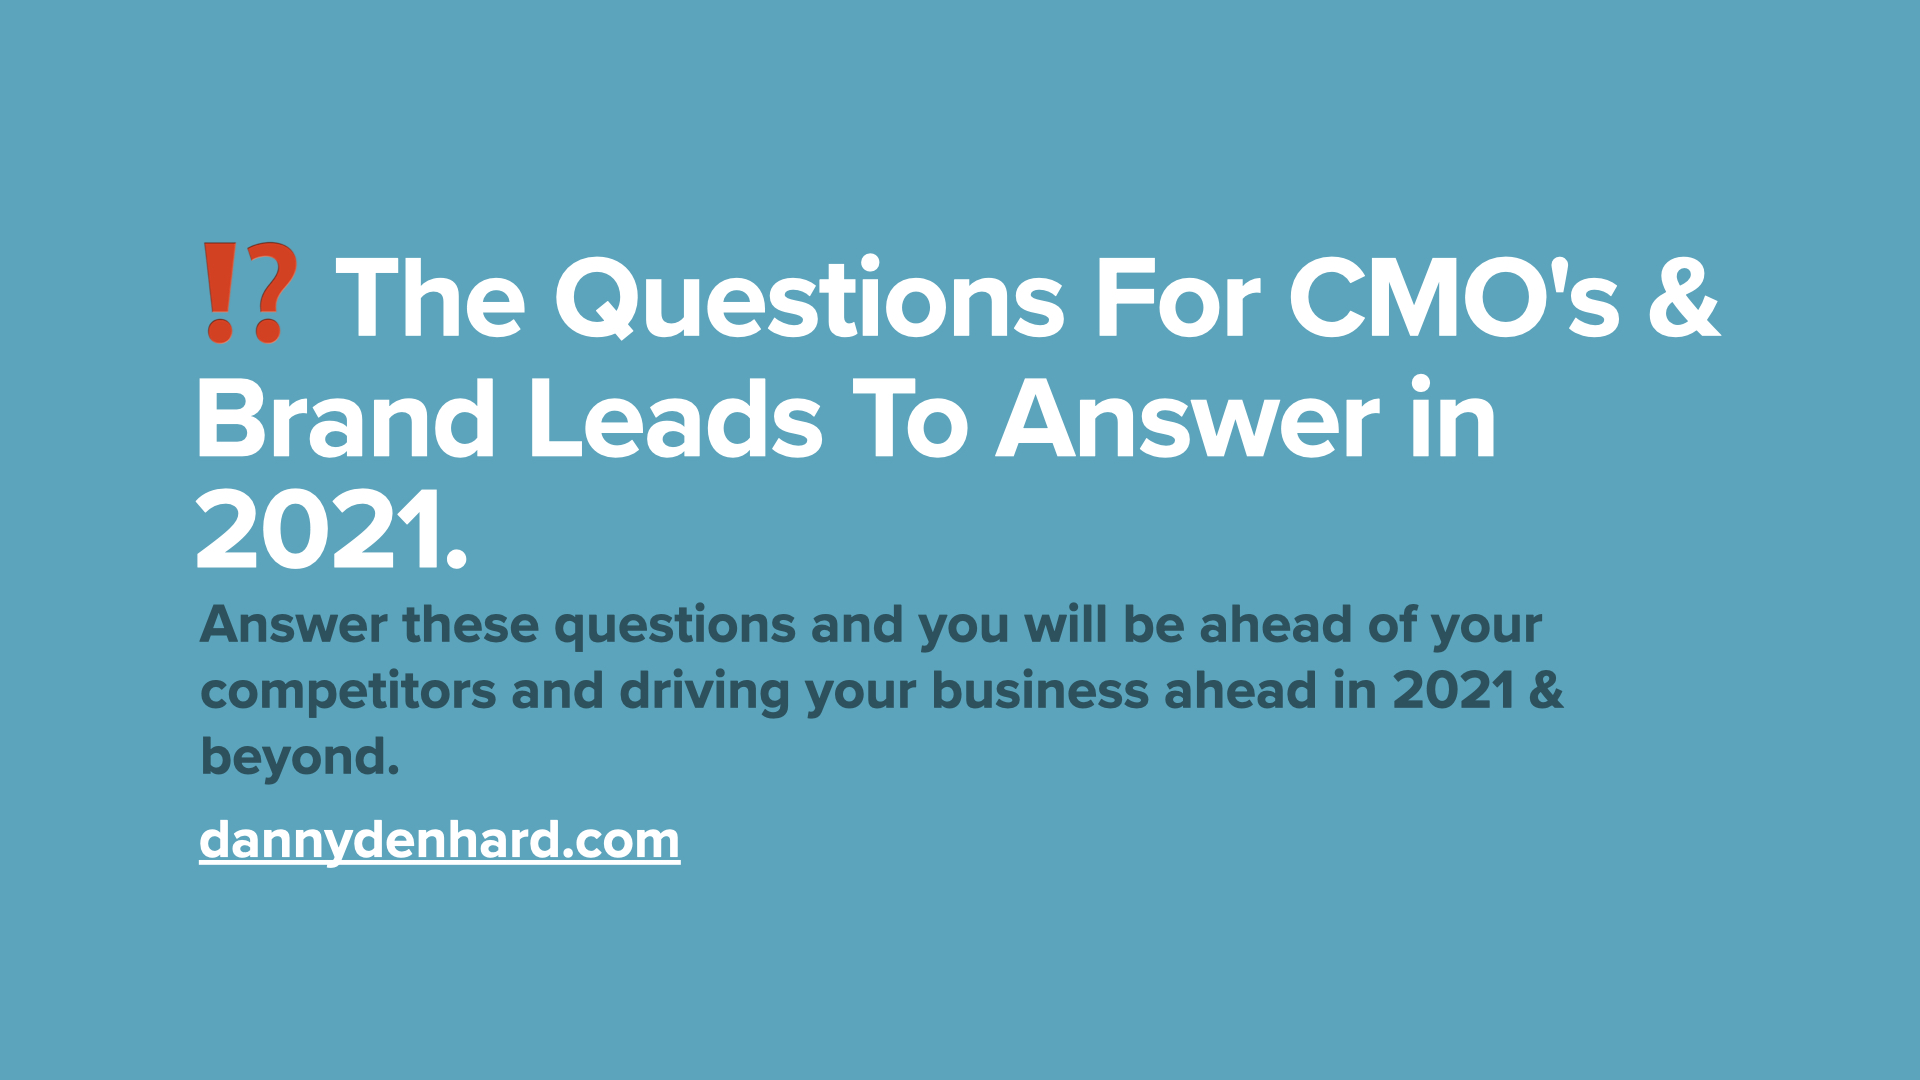 The Questions For CMO's & Brand Leads To Answer in 2021